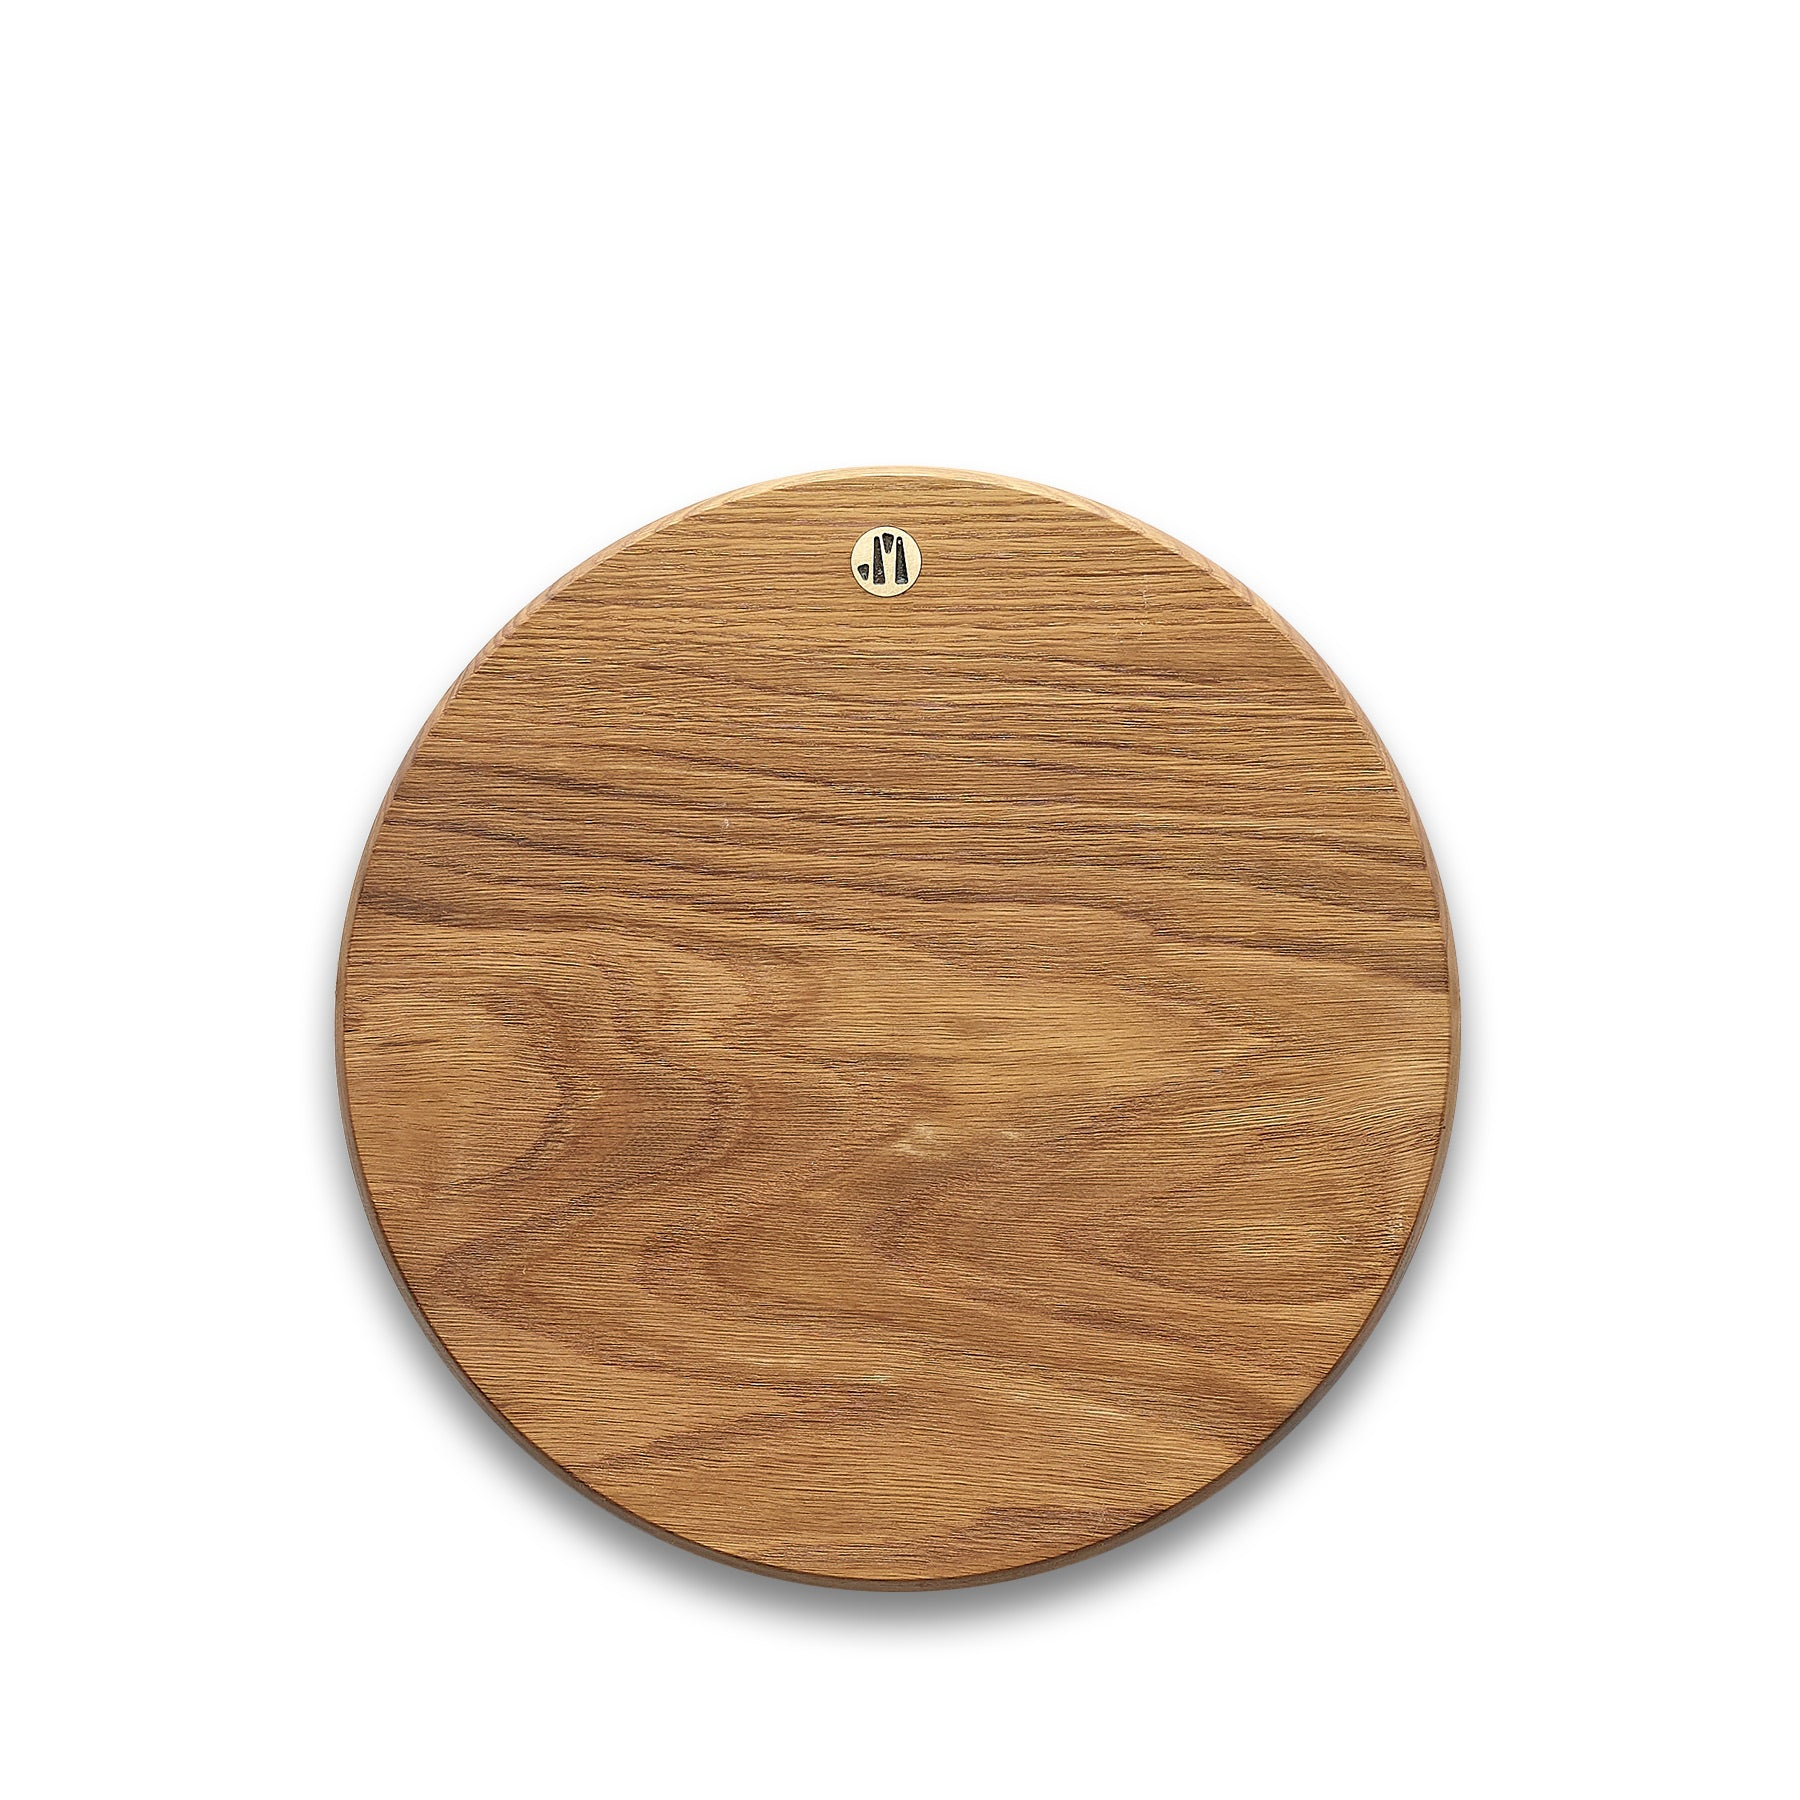 Round White Oak Cutting Board Zoom Image 1